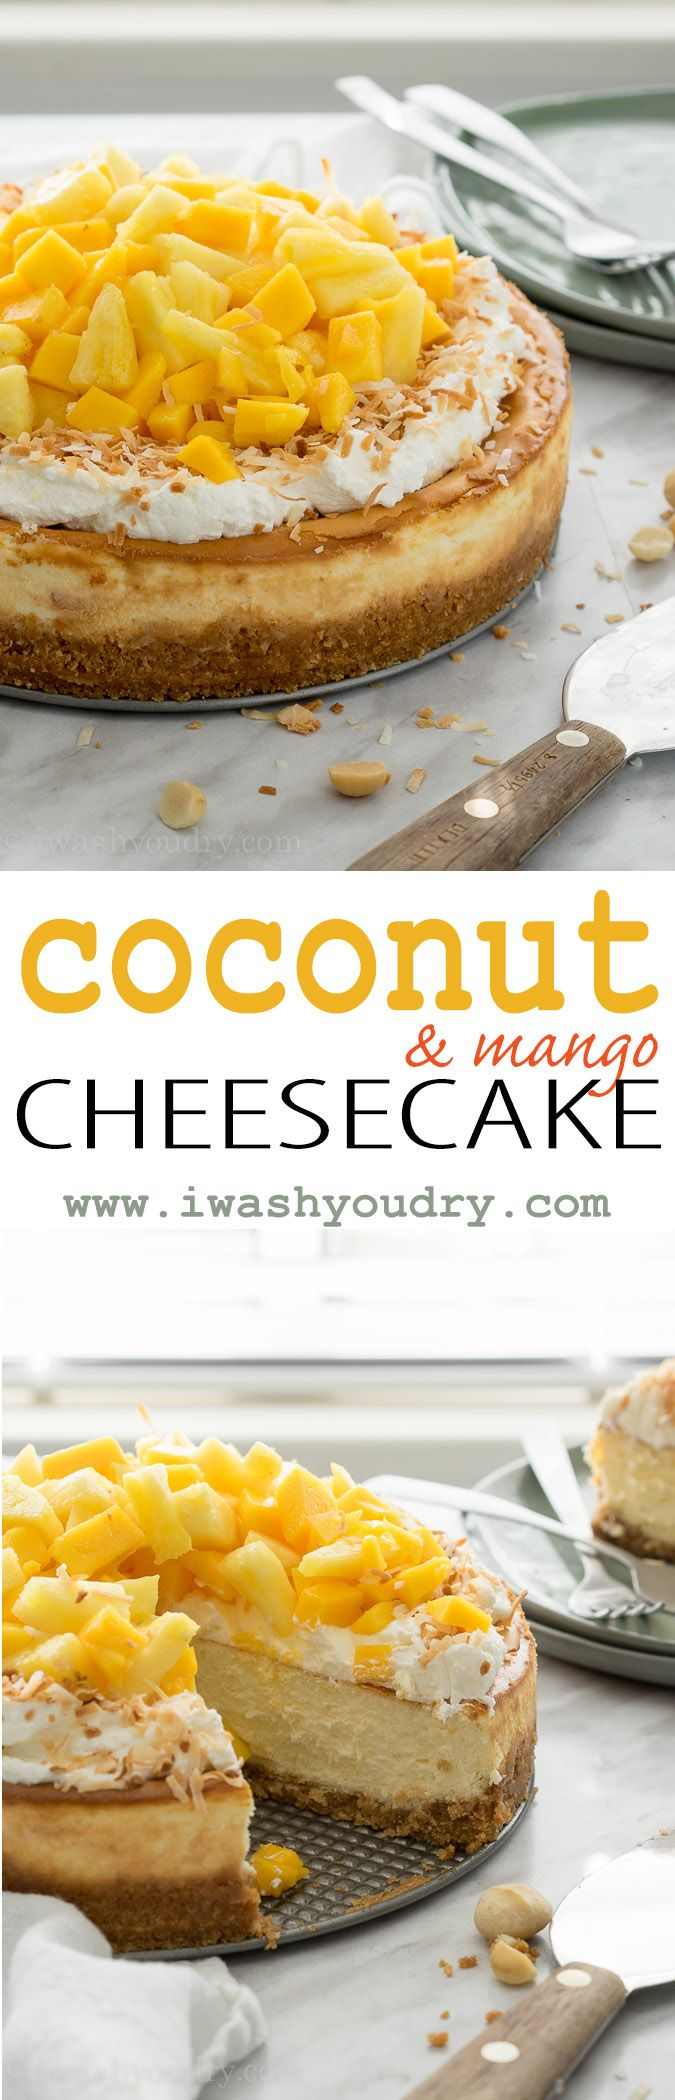 The texture of this Coconut Cheesecake is light and fluffy, but it's the secret ingredient in the crust that really makes this one shine!